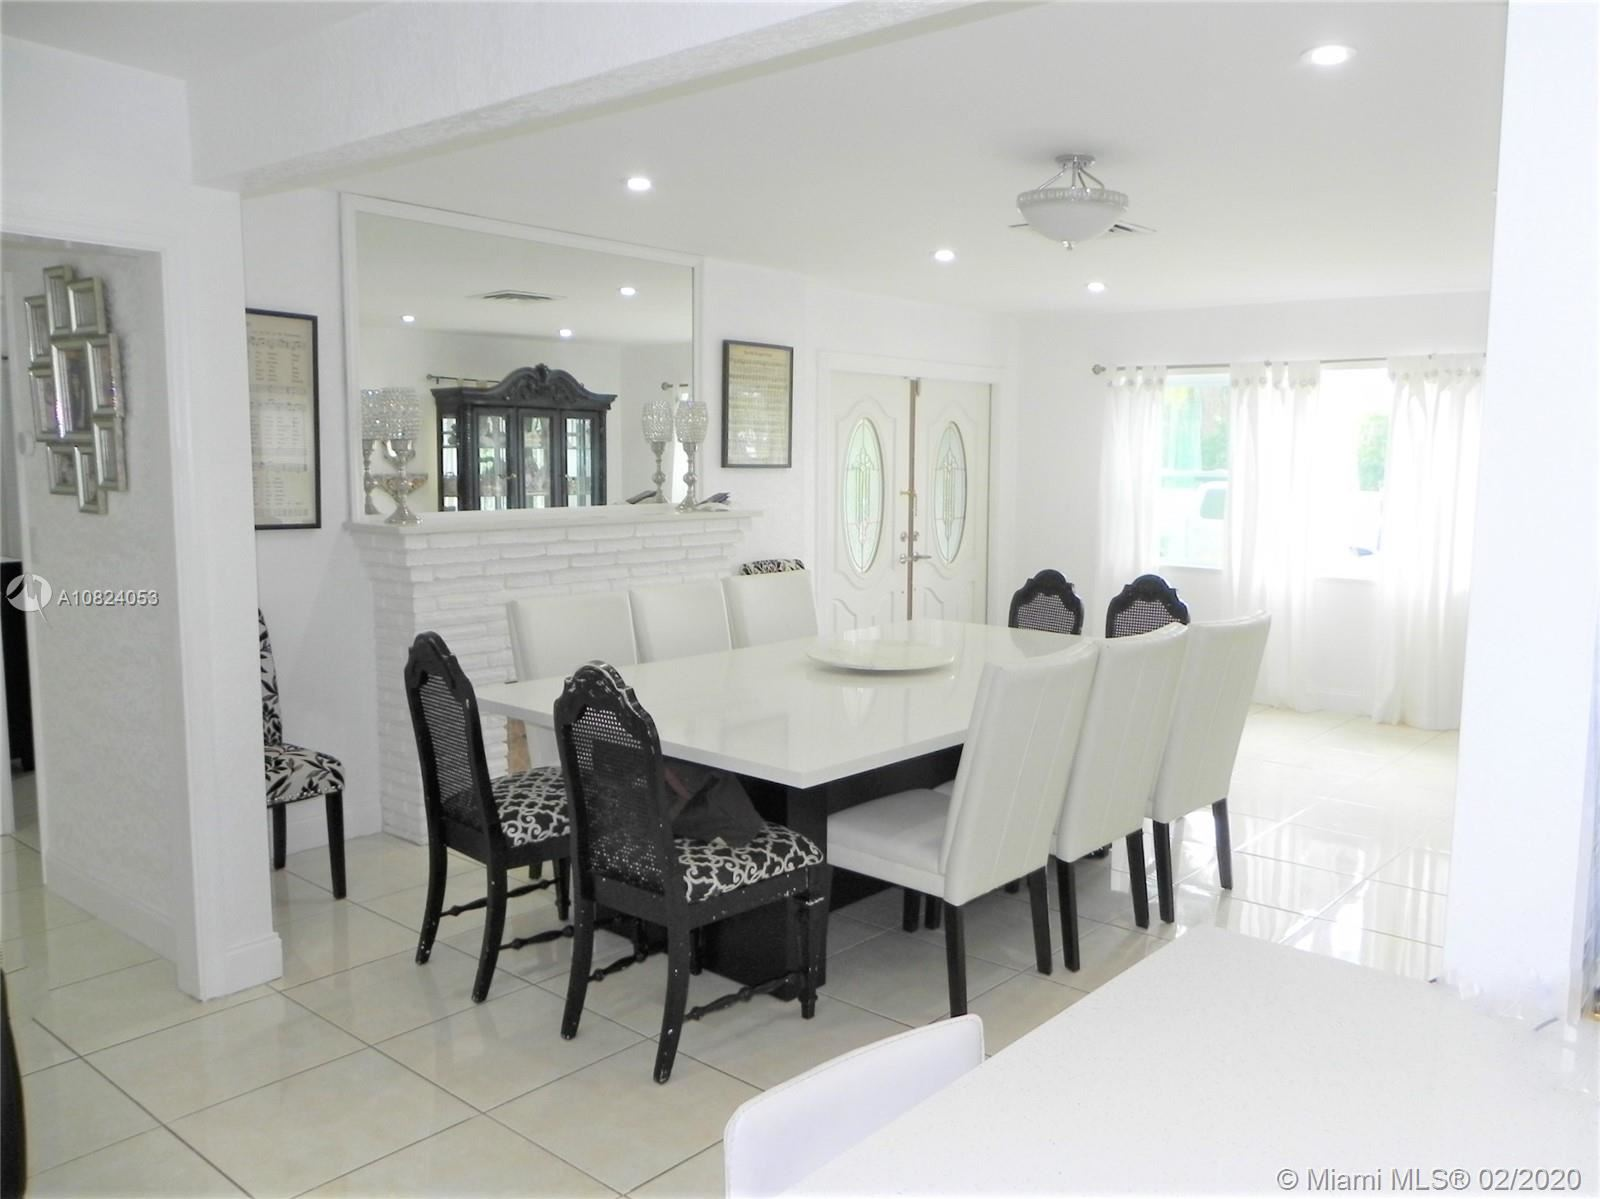 Photo 25 of Listing MLS a10824053 in 1531 Johnson St Hollywood FL 33020